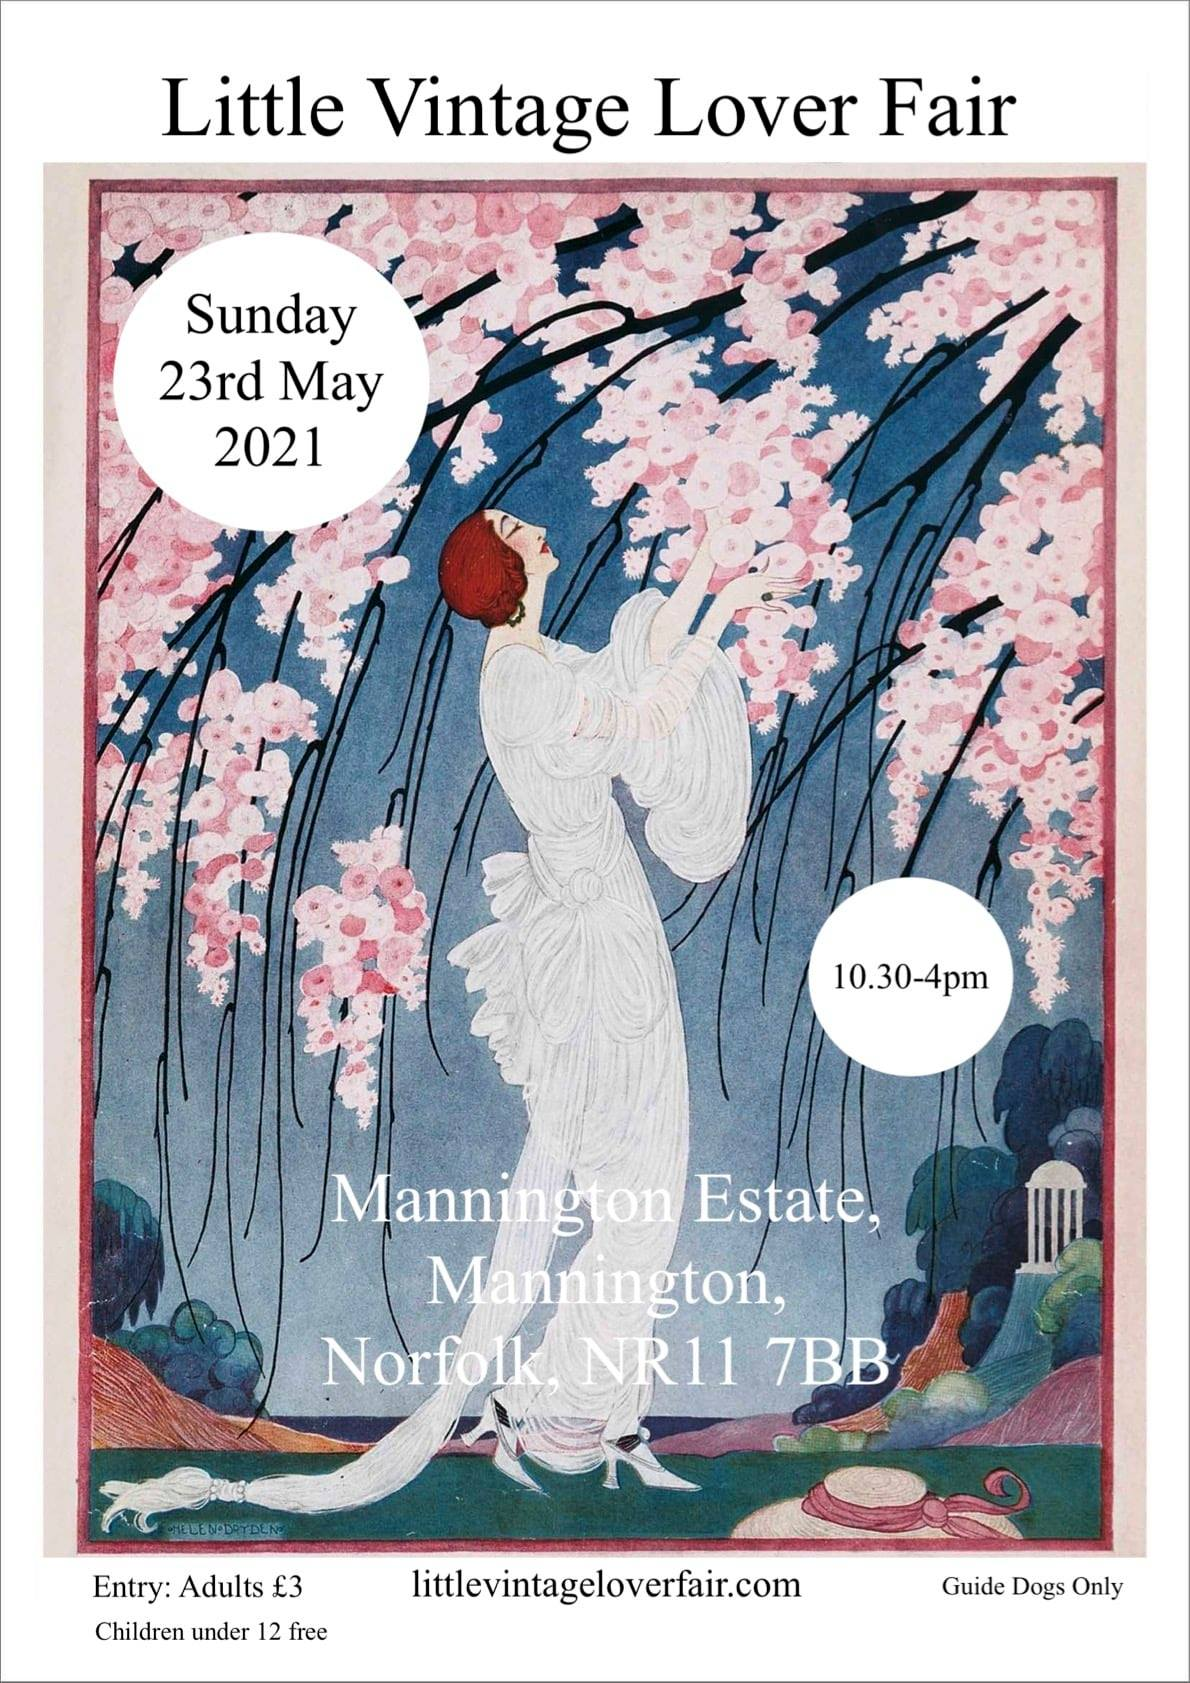 Art Deco style picture of lady with cherry blossom advertising date and time of fair